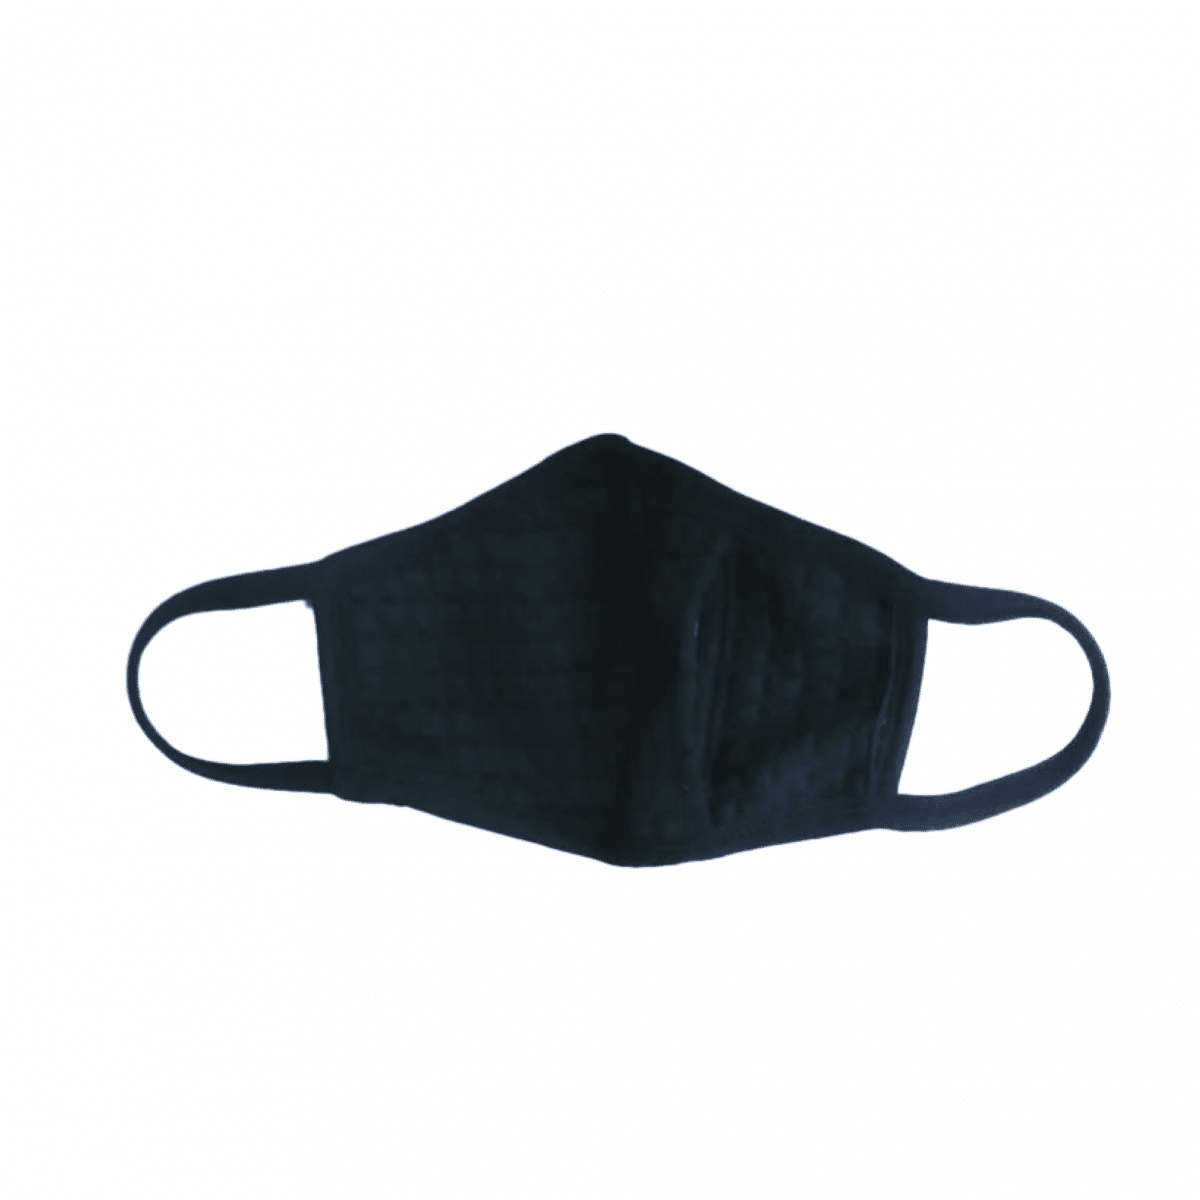 Respect Protect Love The Black Woman® Face Mask HGC Apparel